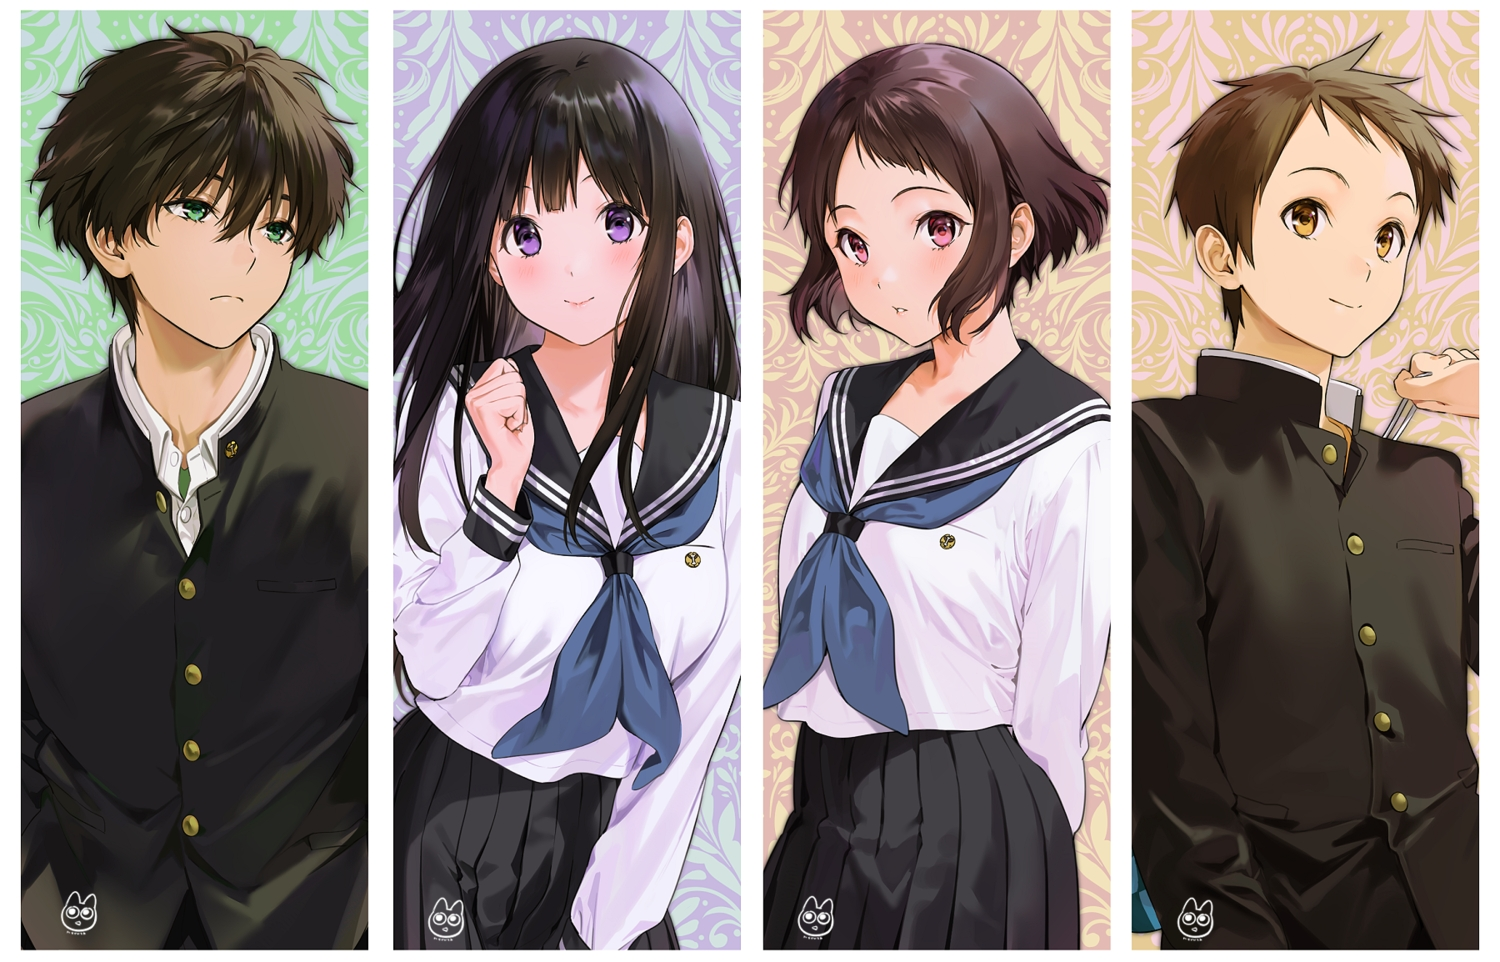 black_hair blush brown_hair chitanda_eru fukube_satoshi green_eyes group hyouka ibara_mayaka long_hair male mery_(apfl0515) oreki_houtarou pink_eyes purple_eyes school_uniform short_hair signed skirt yellow_eyes